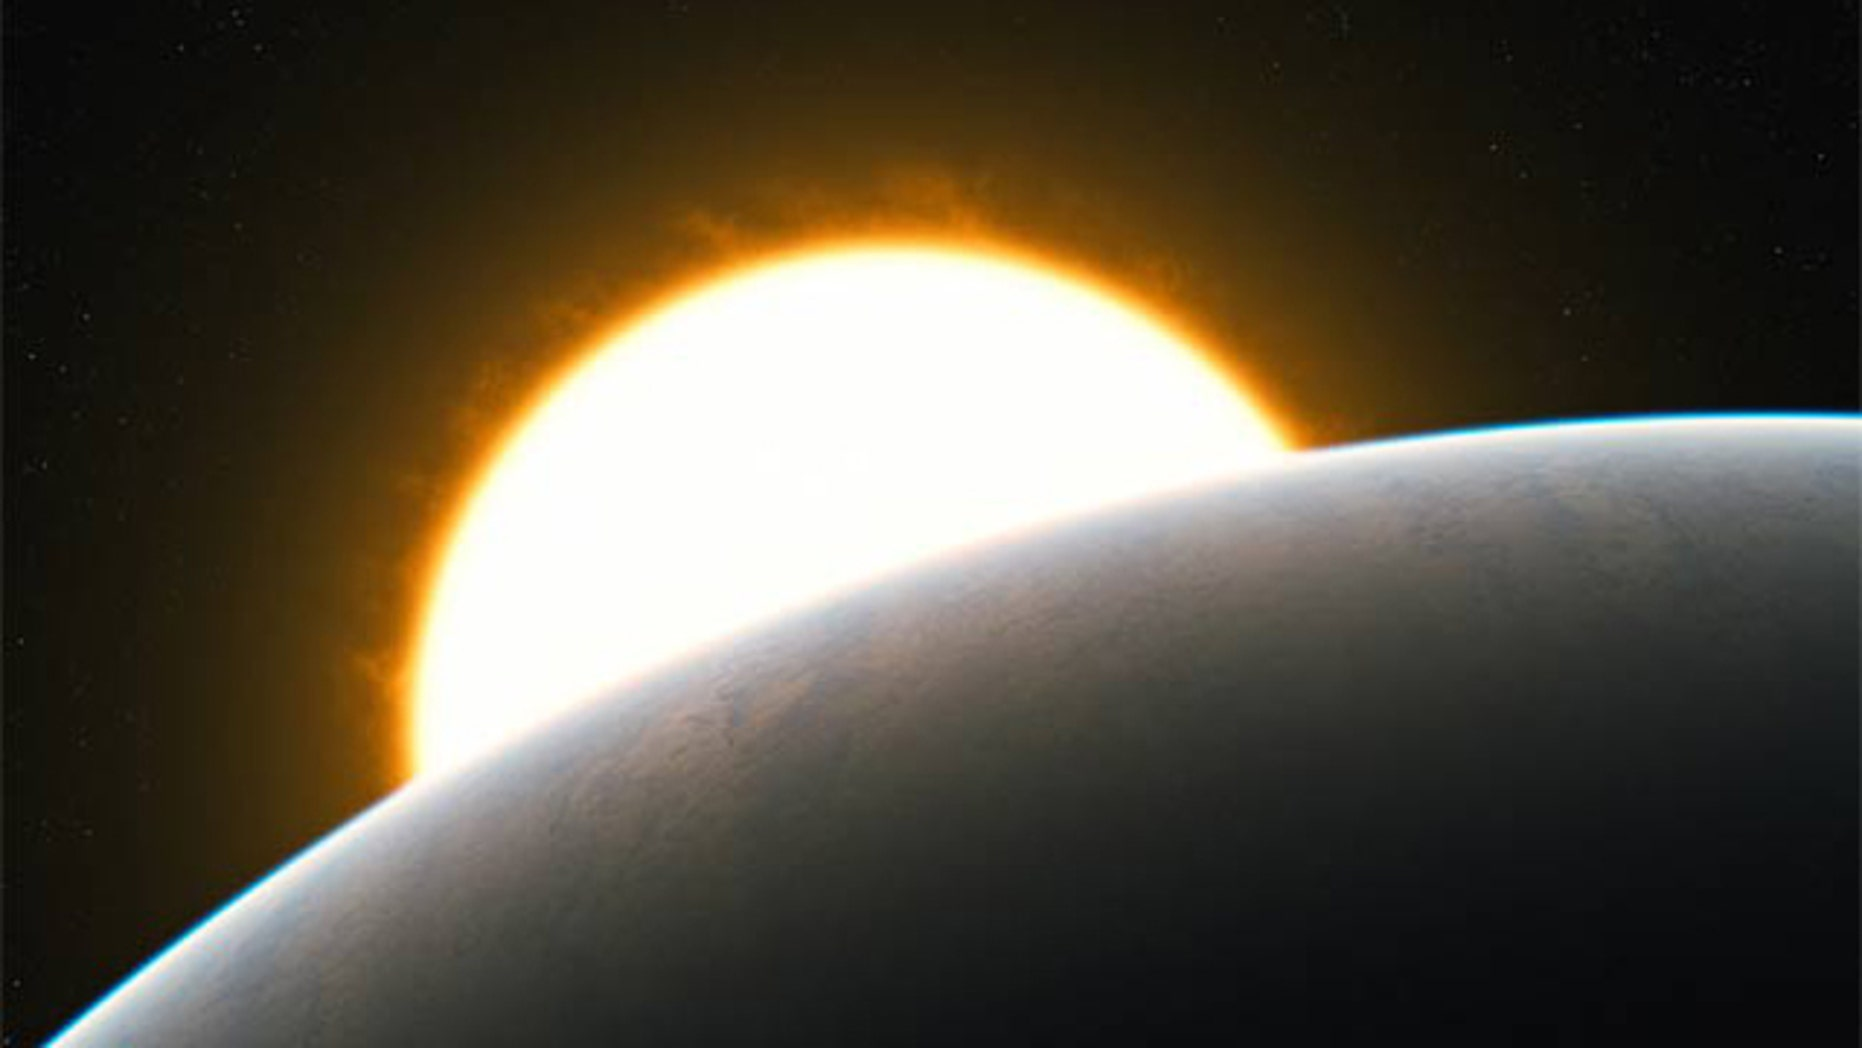 This artist's impression shows the Jupiter-like transiting planet HD 209458b around its sun-like star. The very high precision observations of carbon monoxide gas show that it is streaming with enormous speed from the extremely hot day side to the cooler night side of the planet.